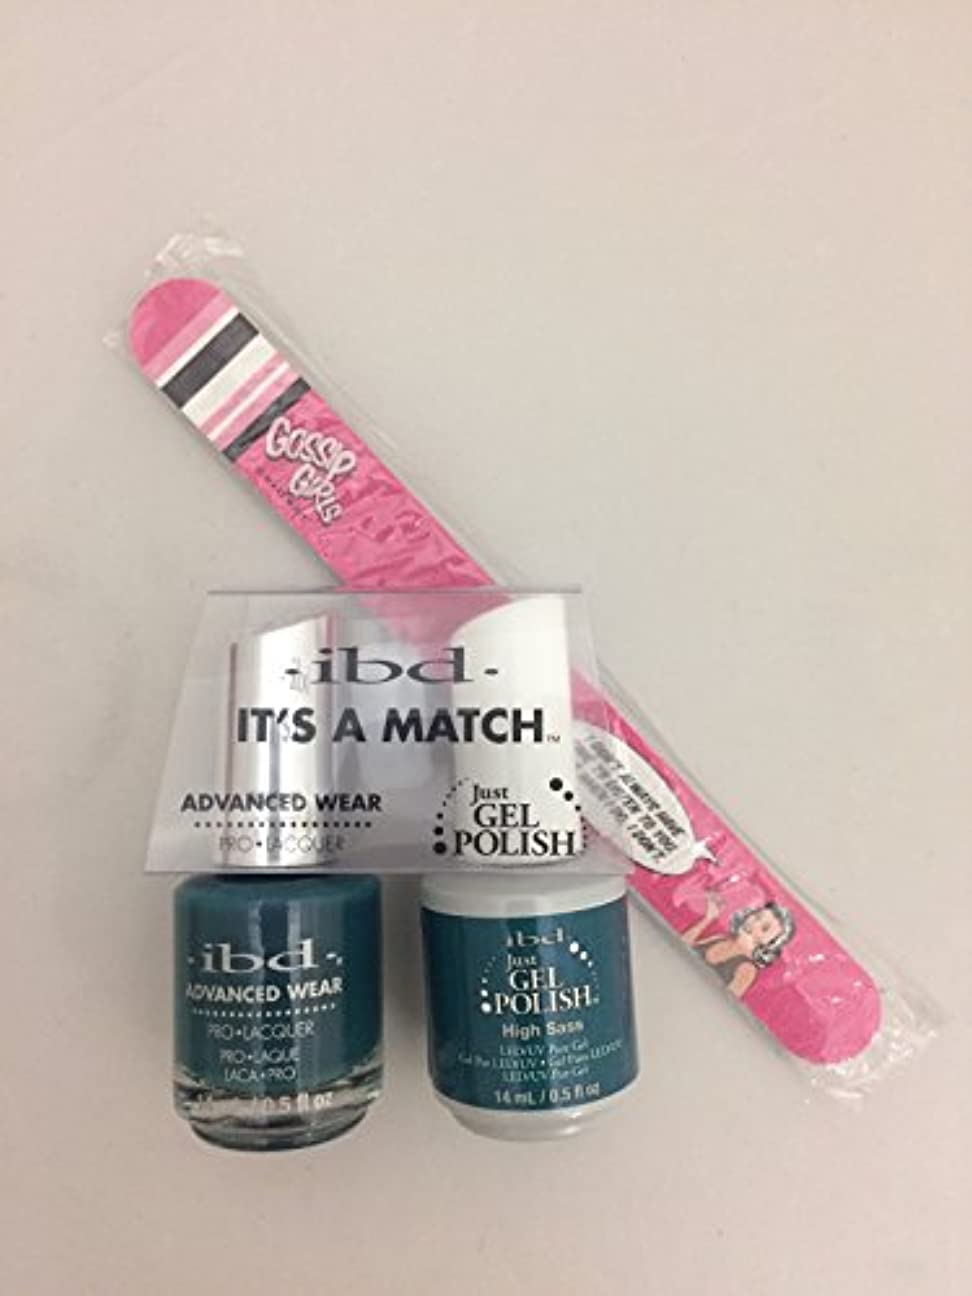 ibd - It's A Match -Duo Pack- Imperial Affairs Collection - High Sass - 14 mL / 0.5 oz Each